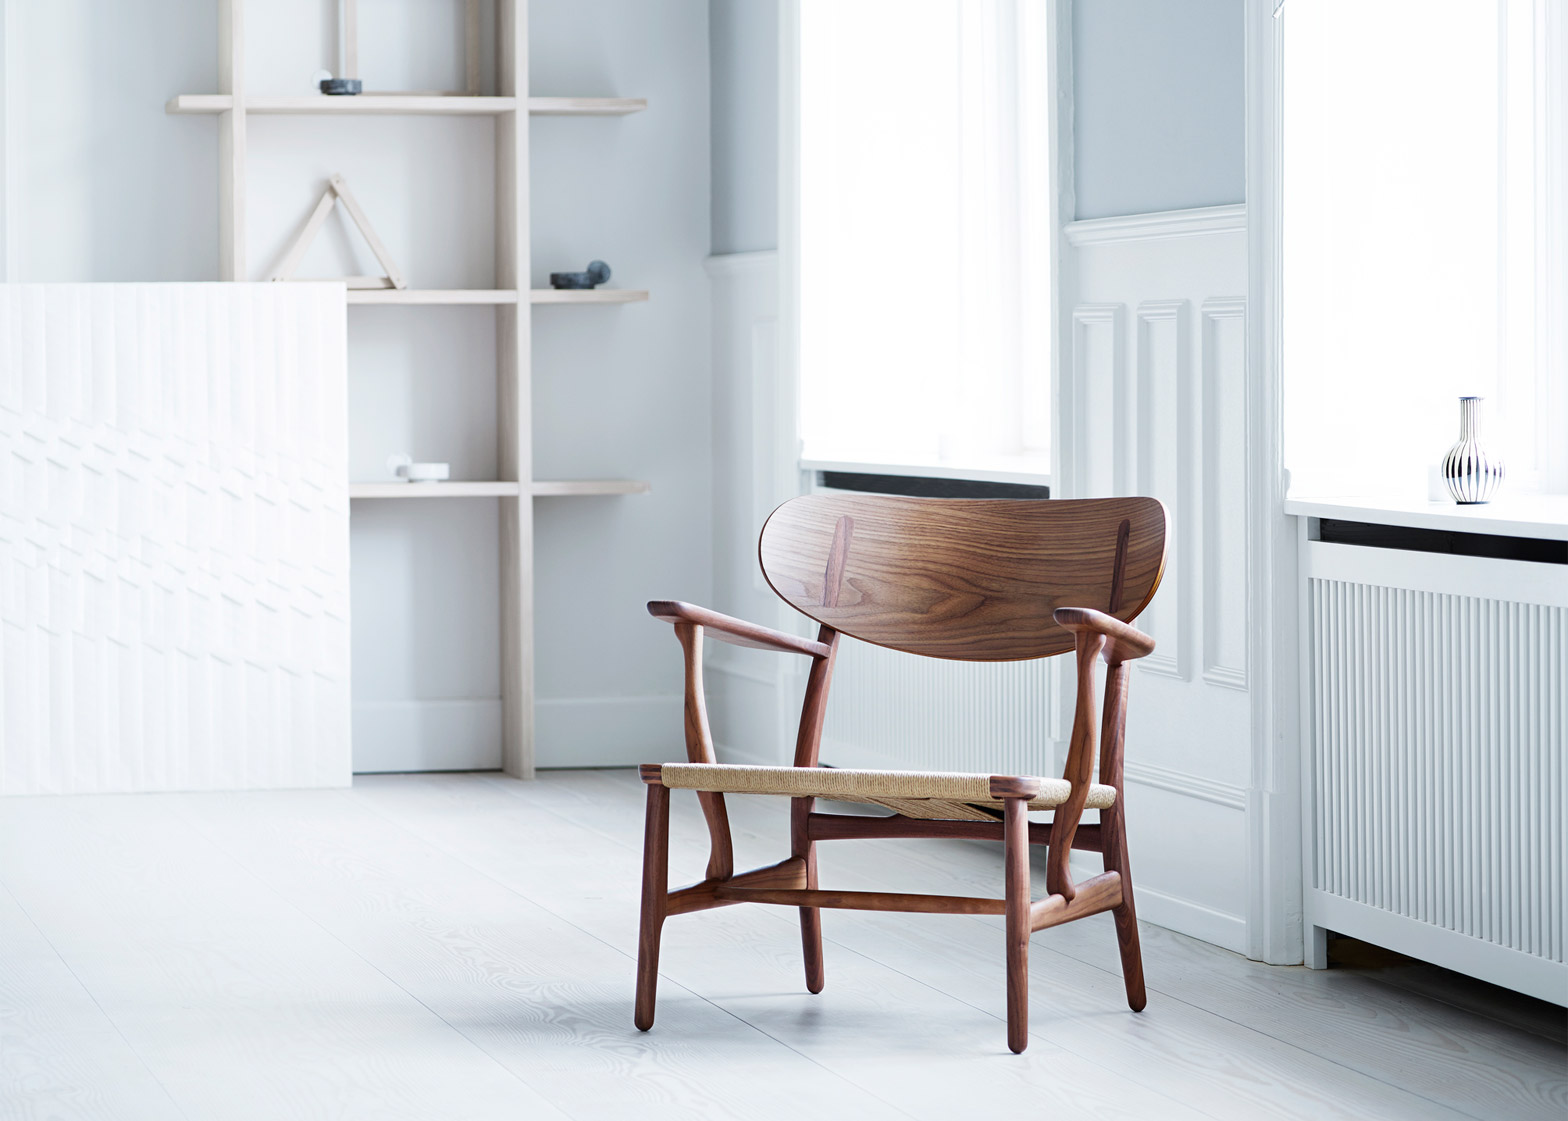 Chairs by Carl Hansen & Son